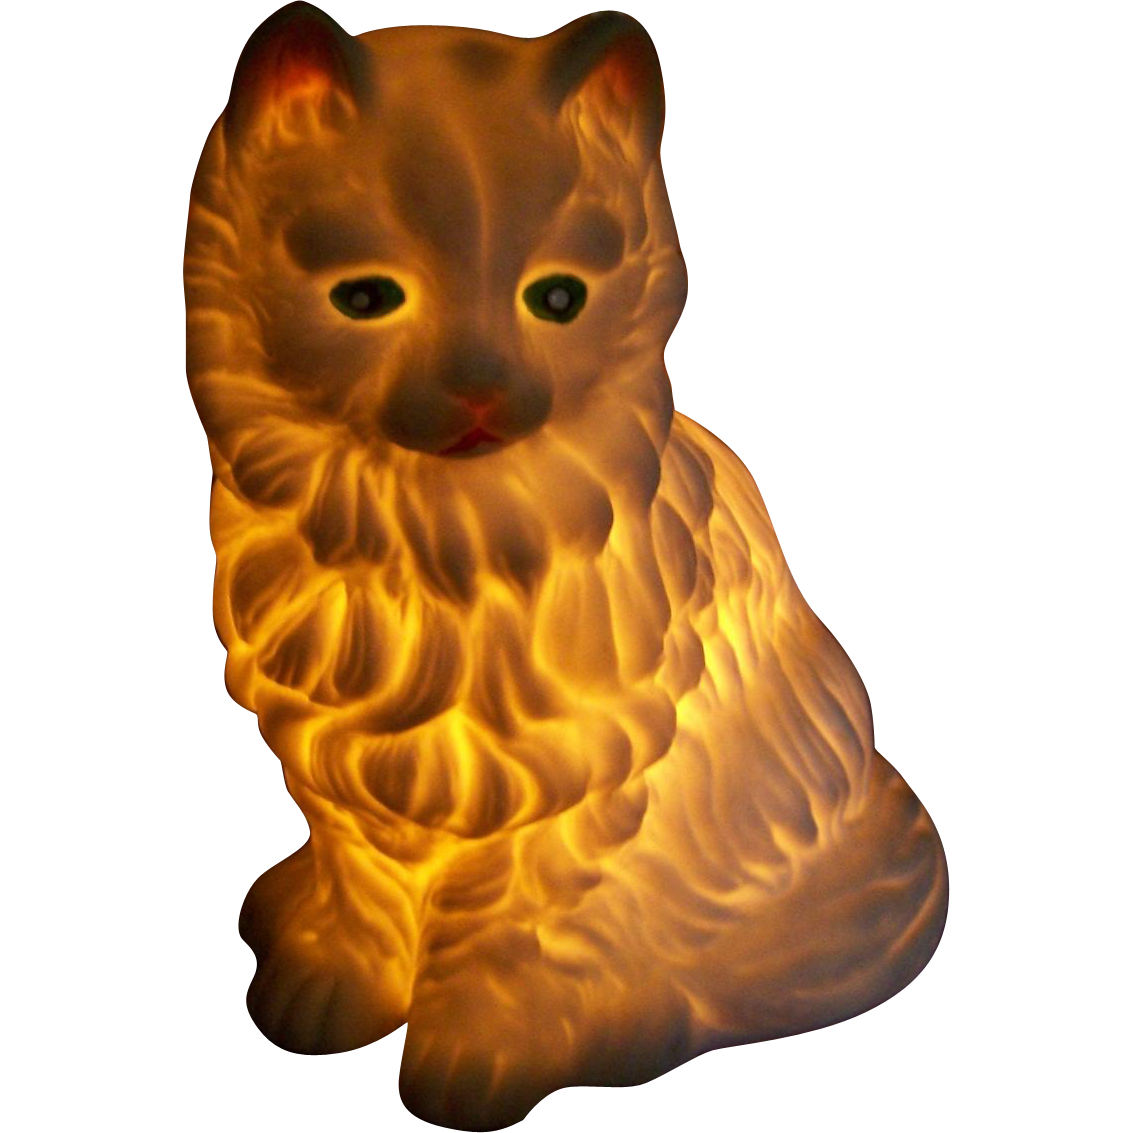 What A Charming Vintage  Ceramic Figurine Kitty Cat Lamp Oh My Home Decor Accent